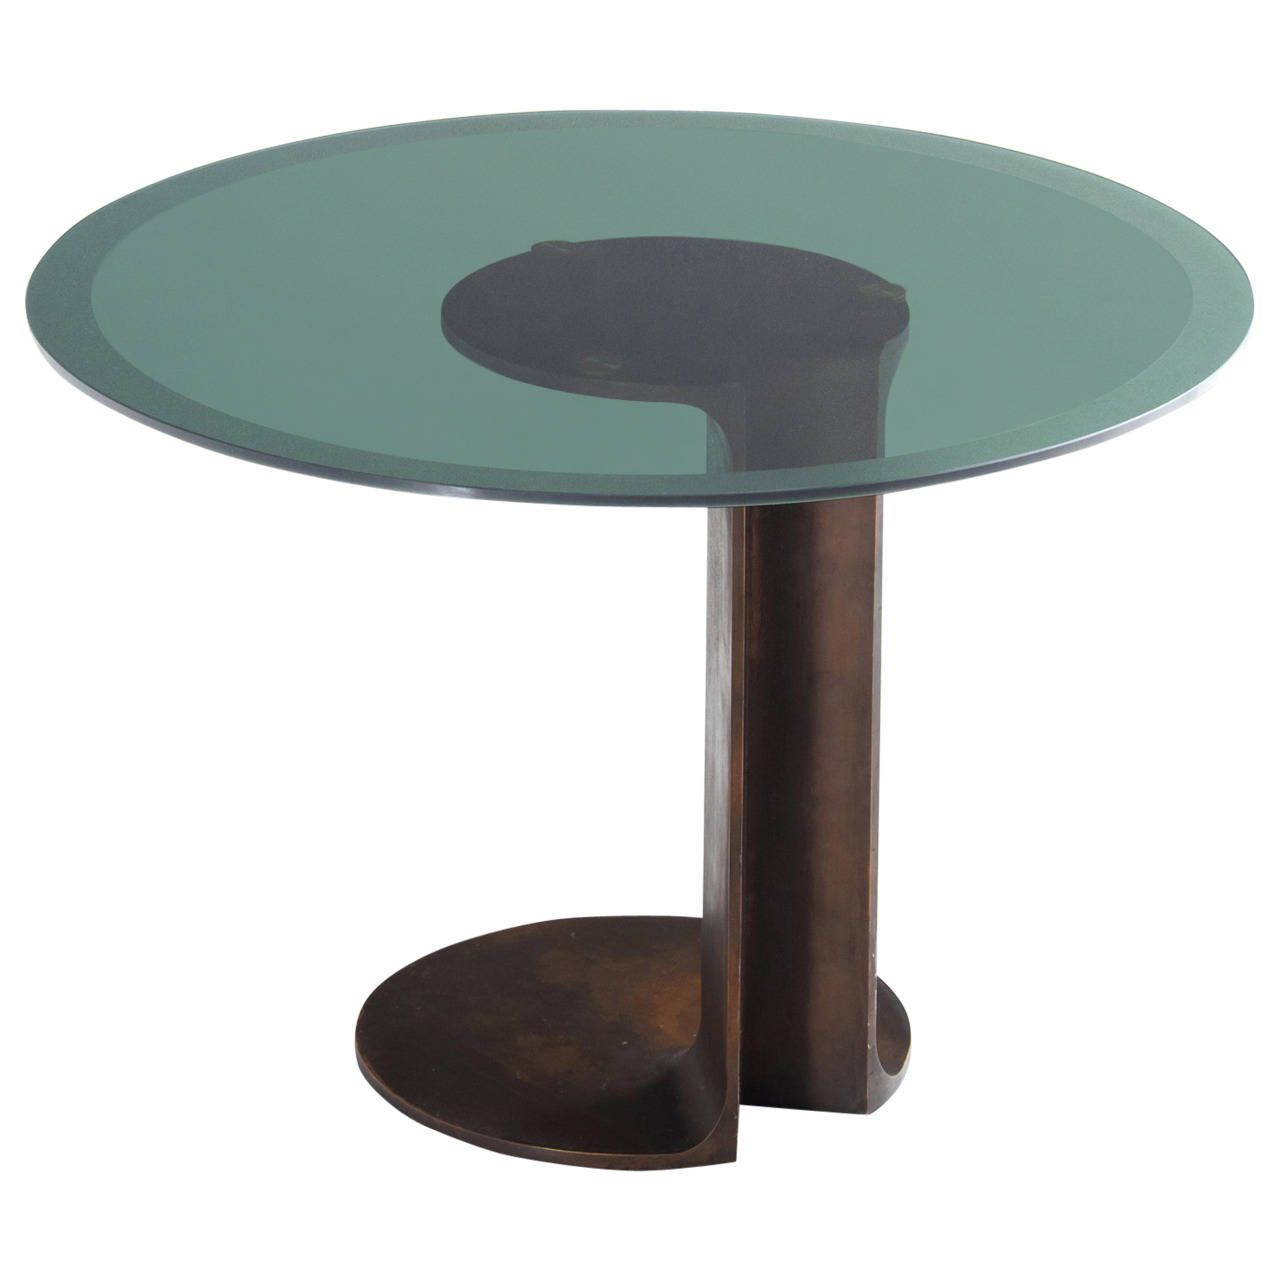 Tobia Scarpa Sculptural Table In Bronze And Glass From A Unique